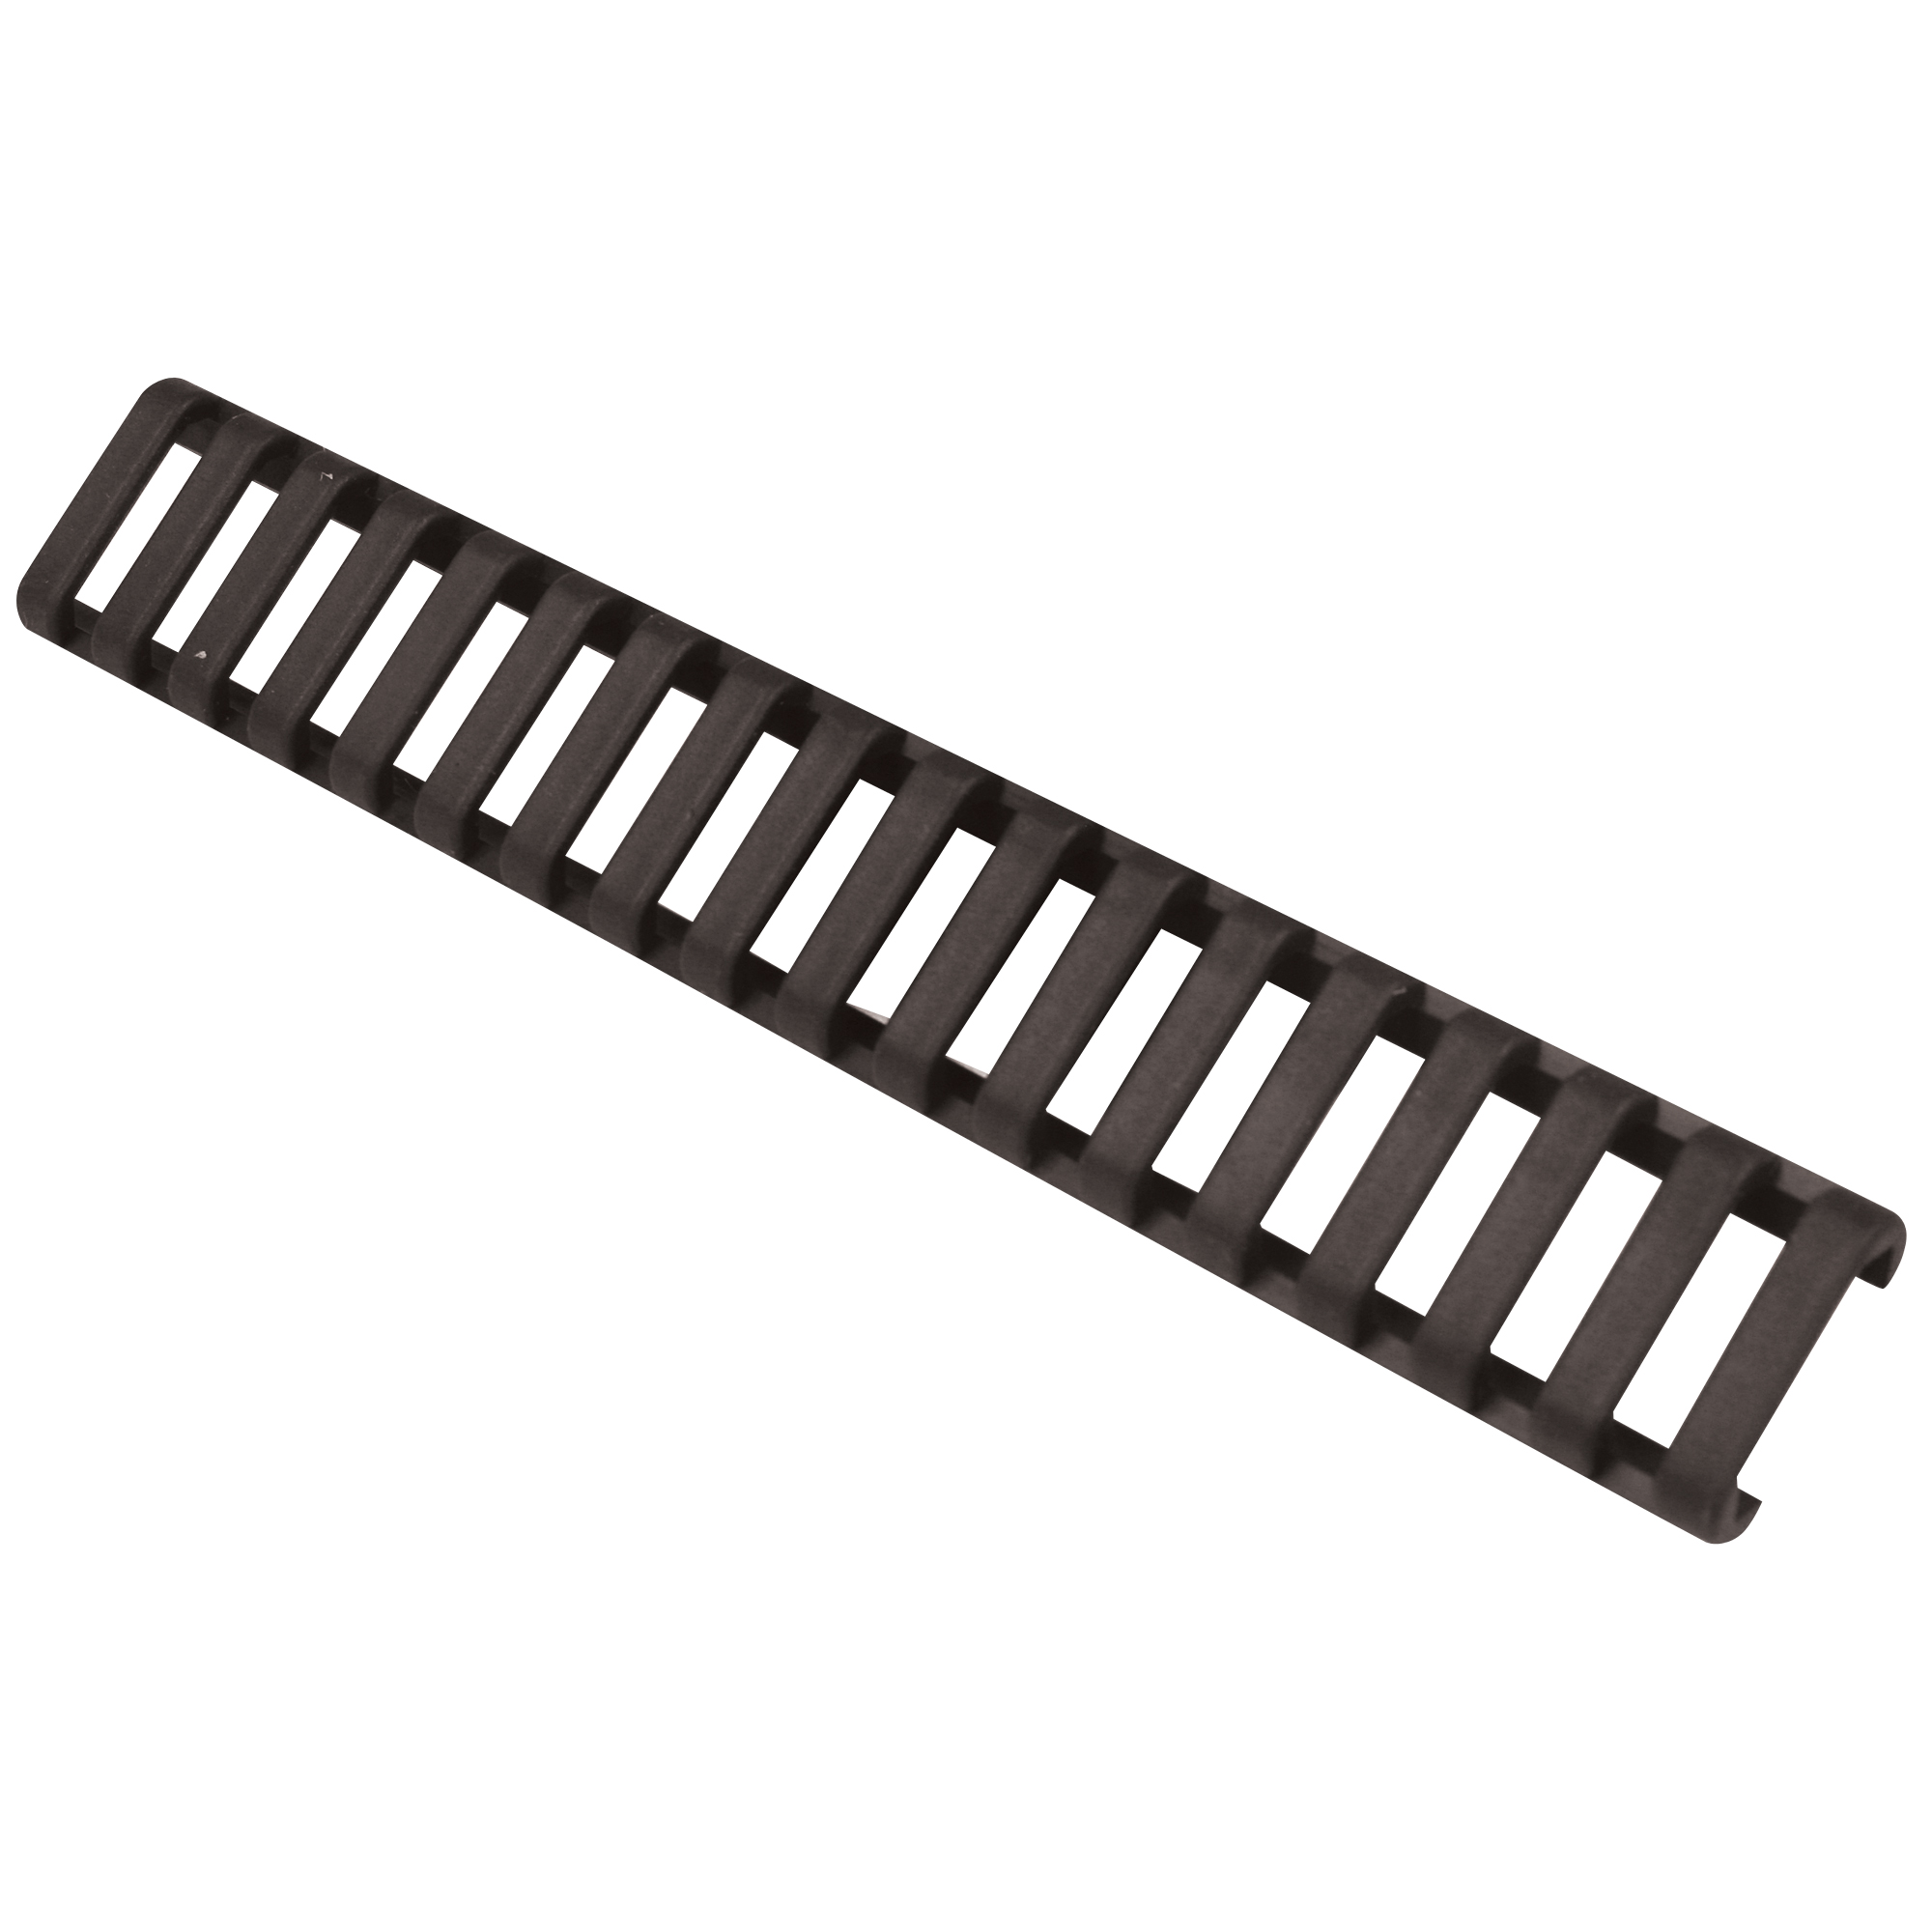 """Get complete rail protection with minimal weight with Blackhawks Low Profile Rail Cover. Constructed of lightweight Santoprene(R) with a rubbery grip surface"""" this rail cover delivers improved weapon control and effectively shields the operator from sharp rail edges."""